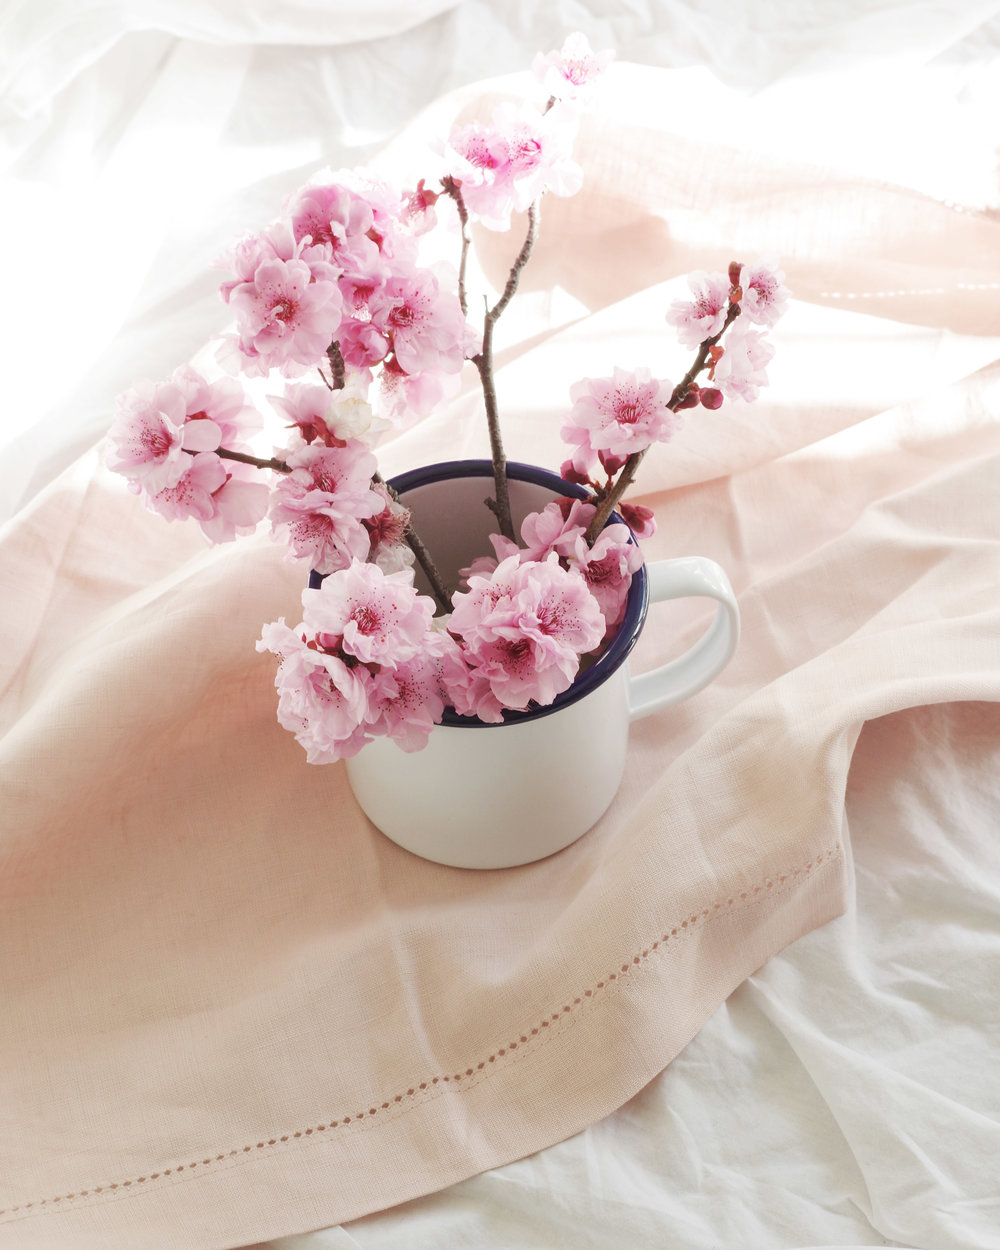 hygge nature spring cherry blossom